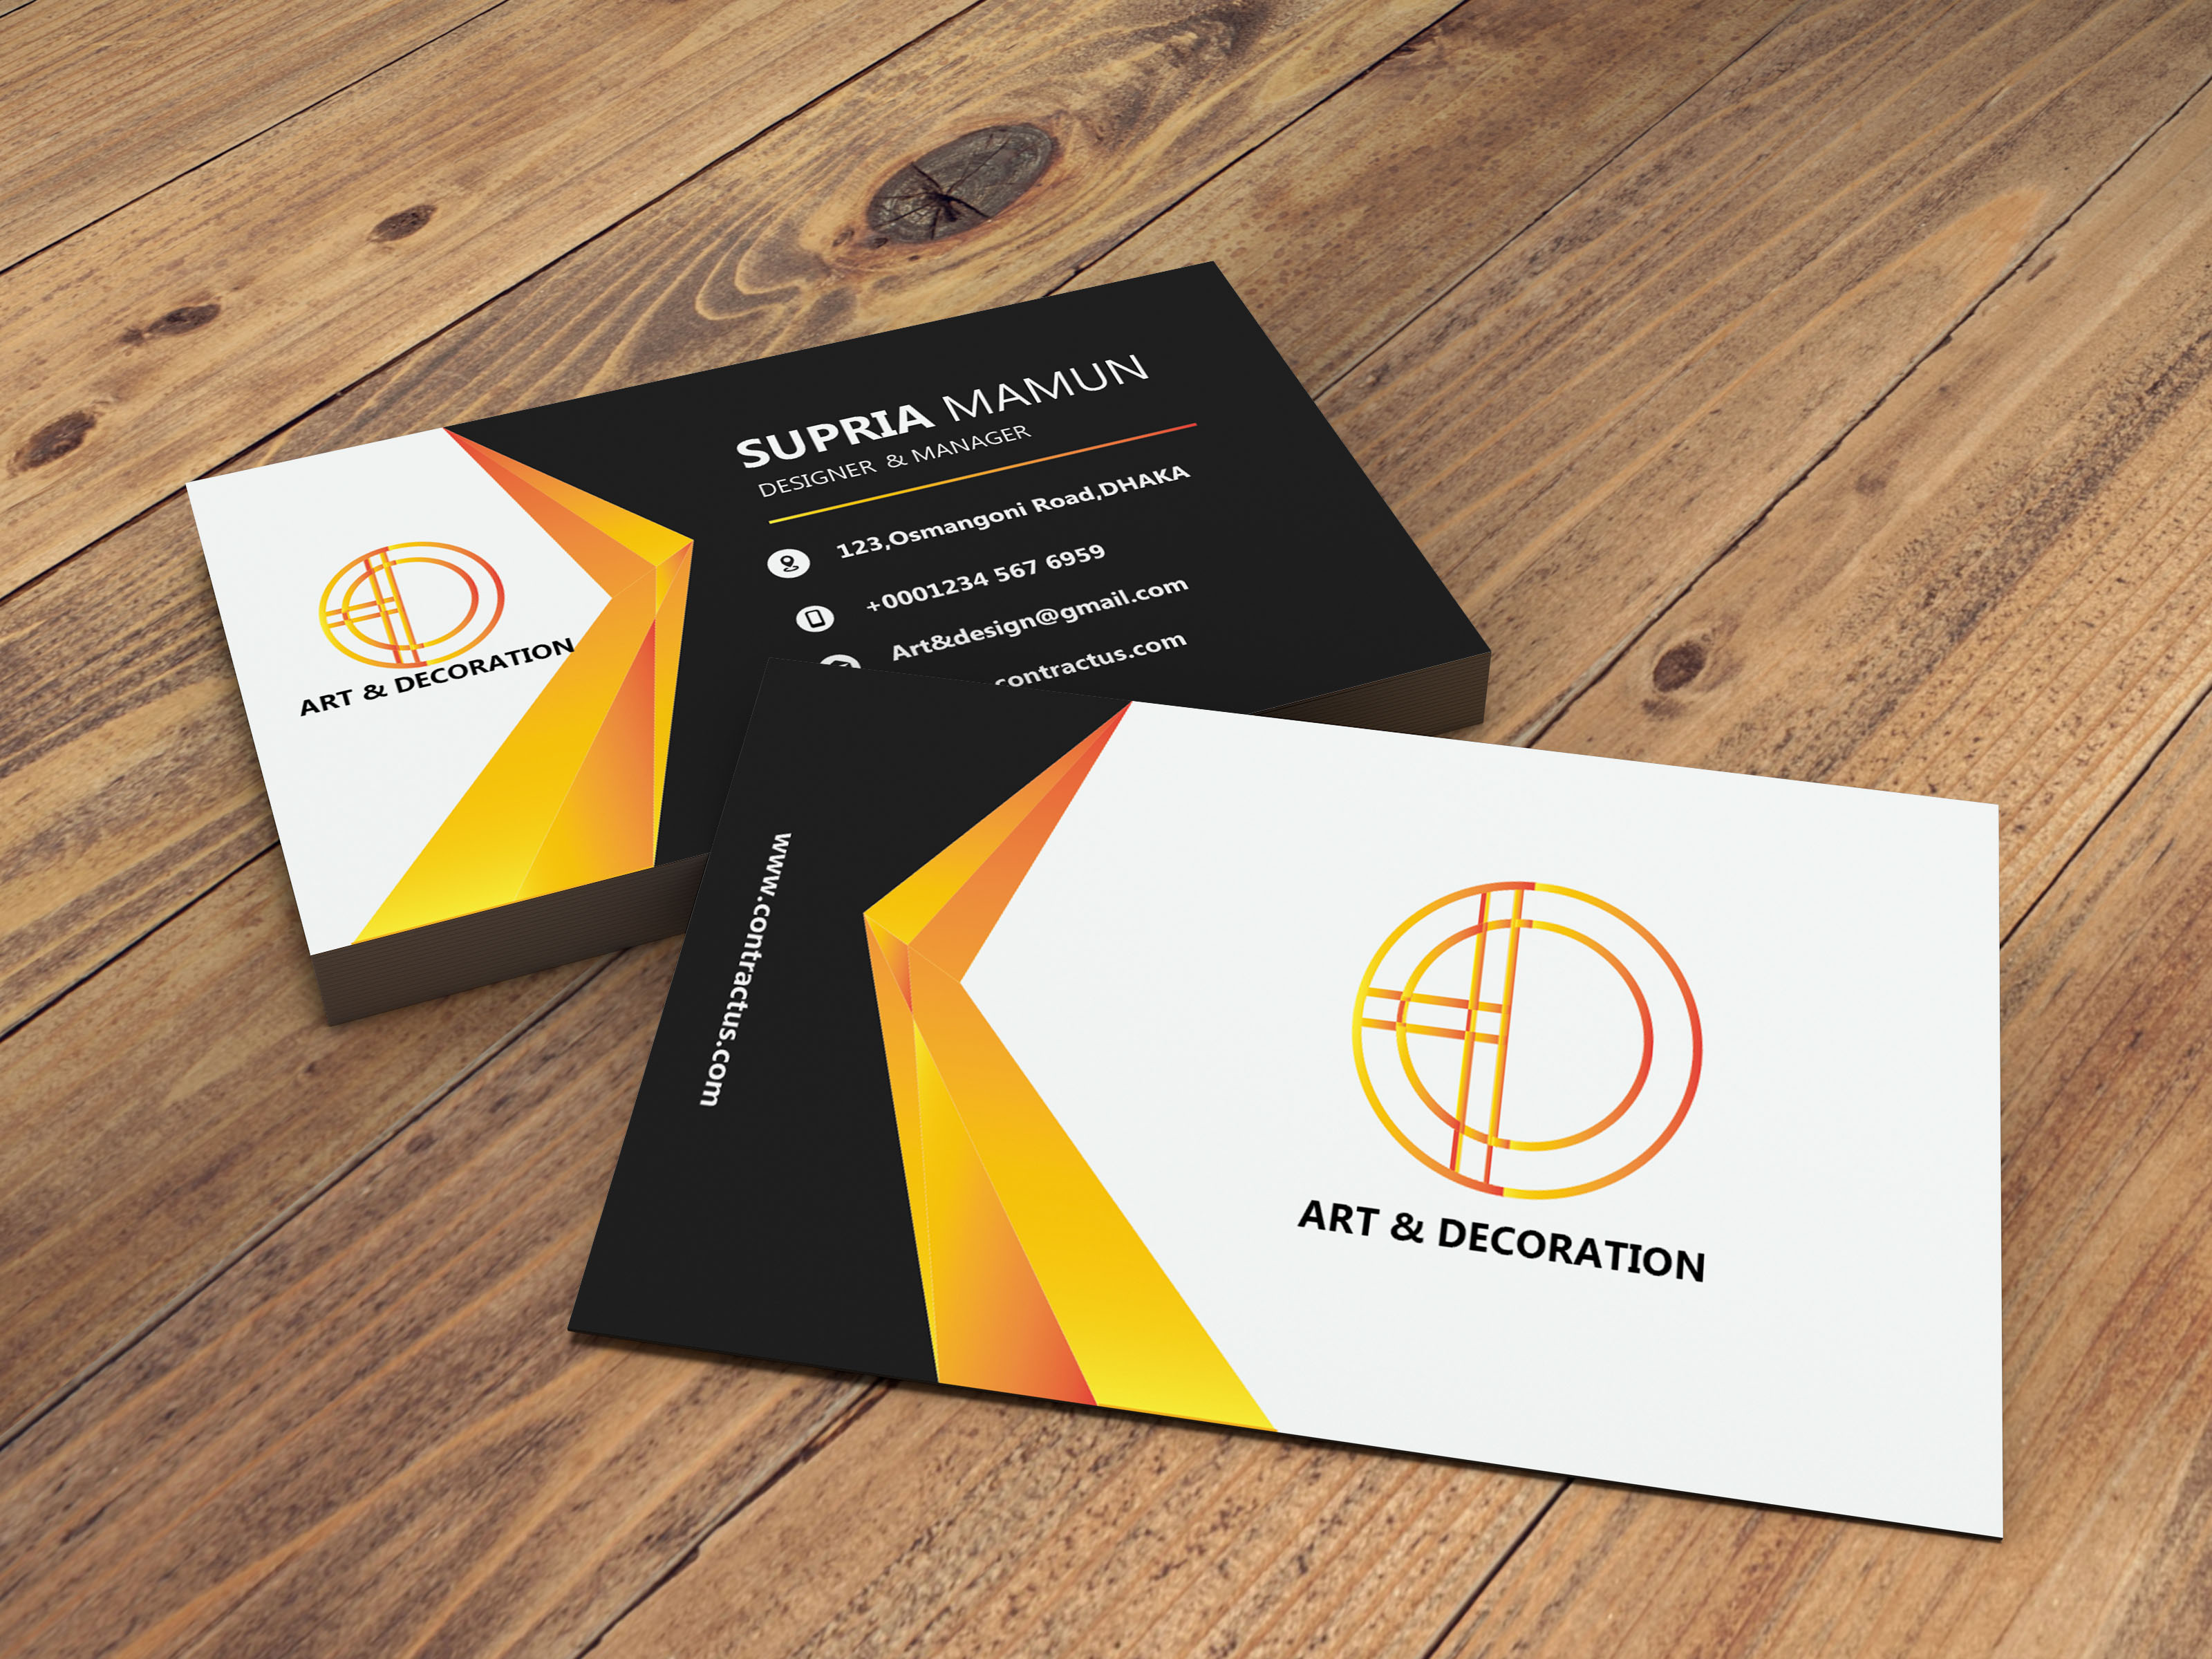 I'll Design You 1 Modern Unique Business Card Design